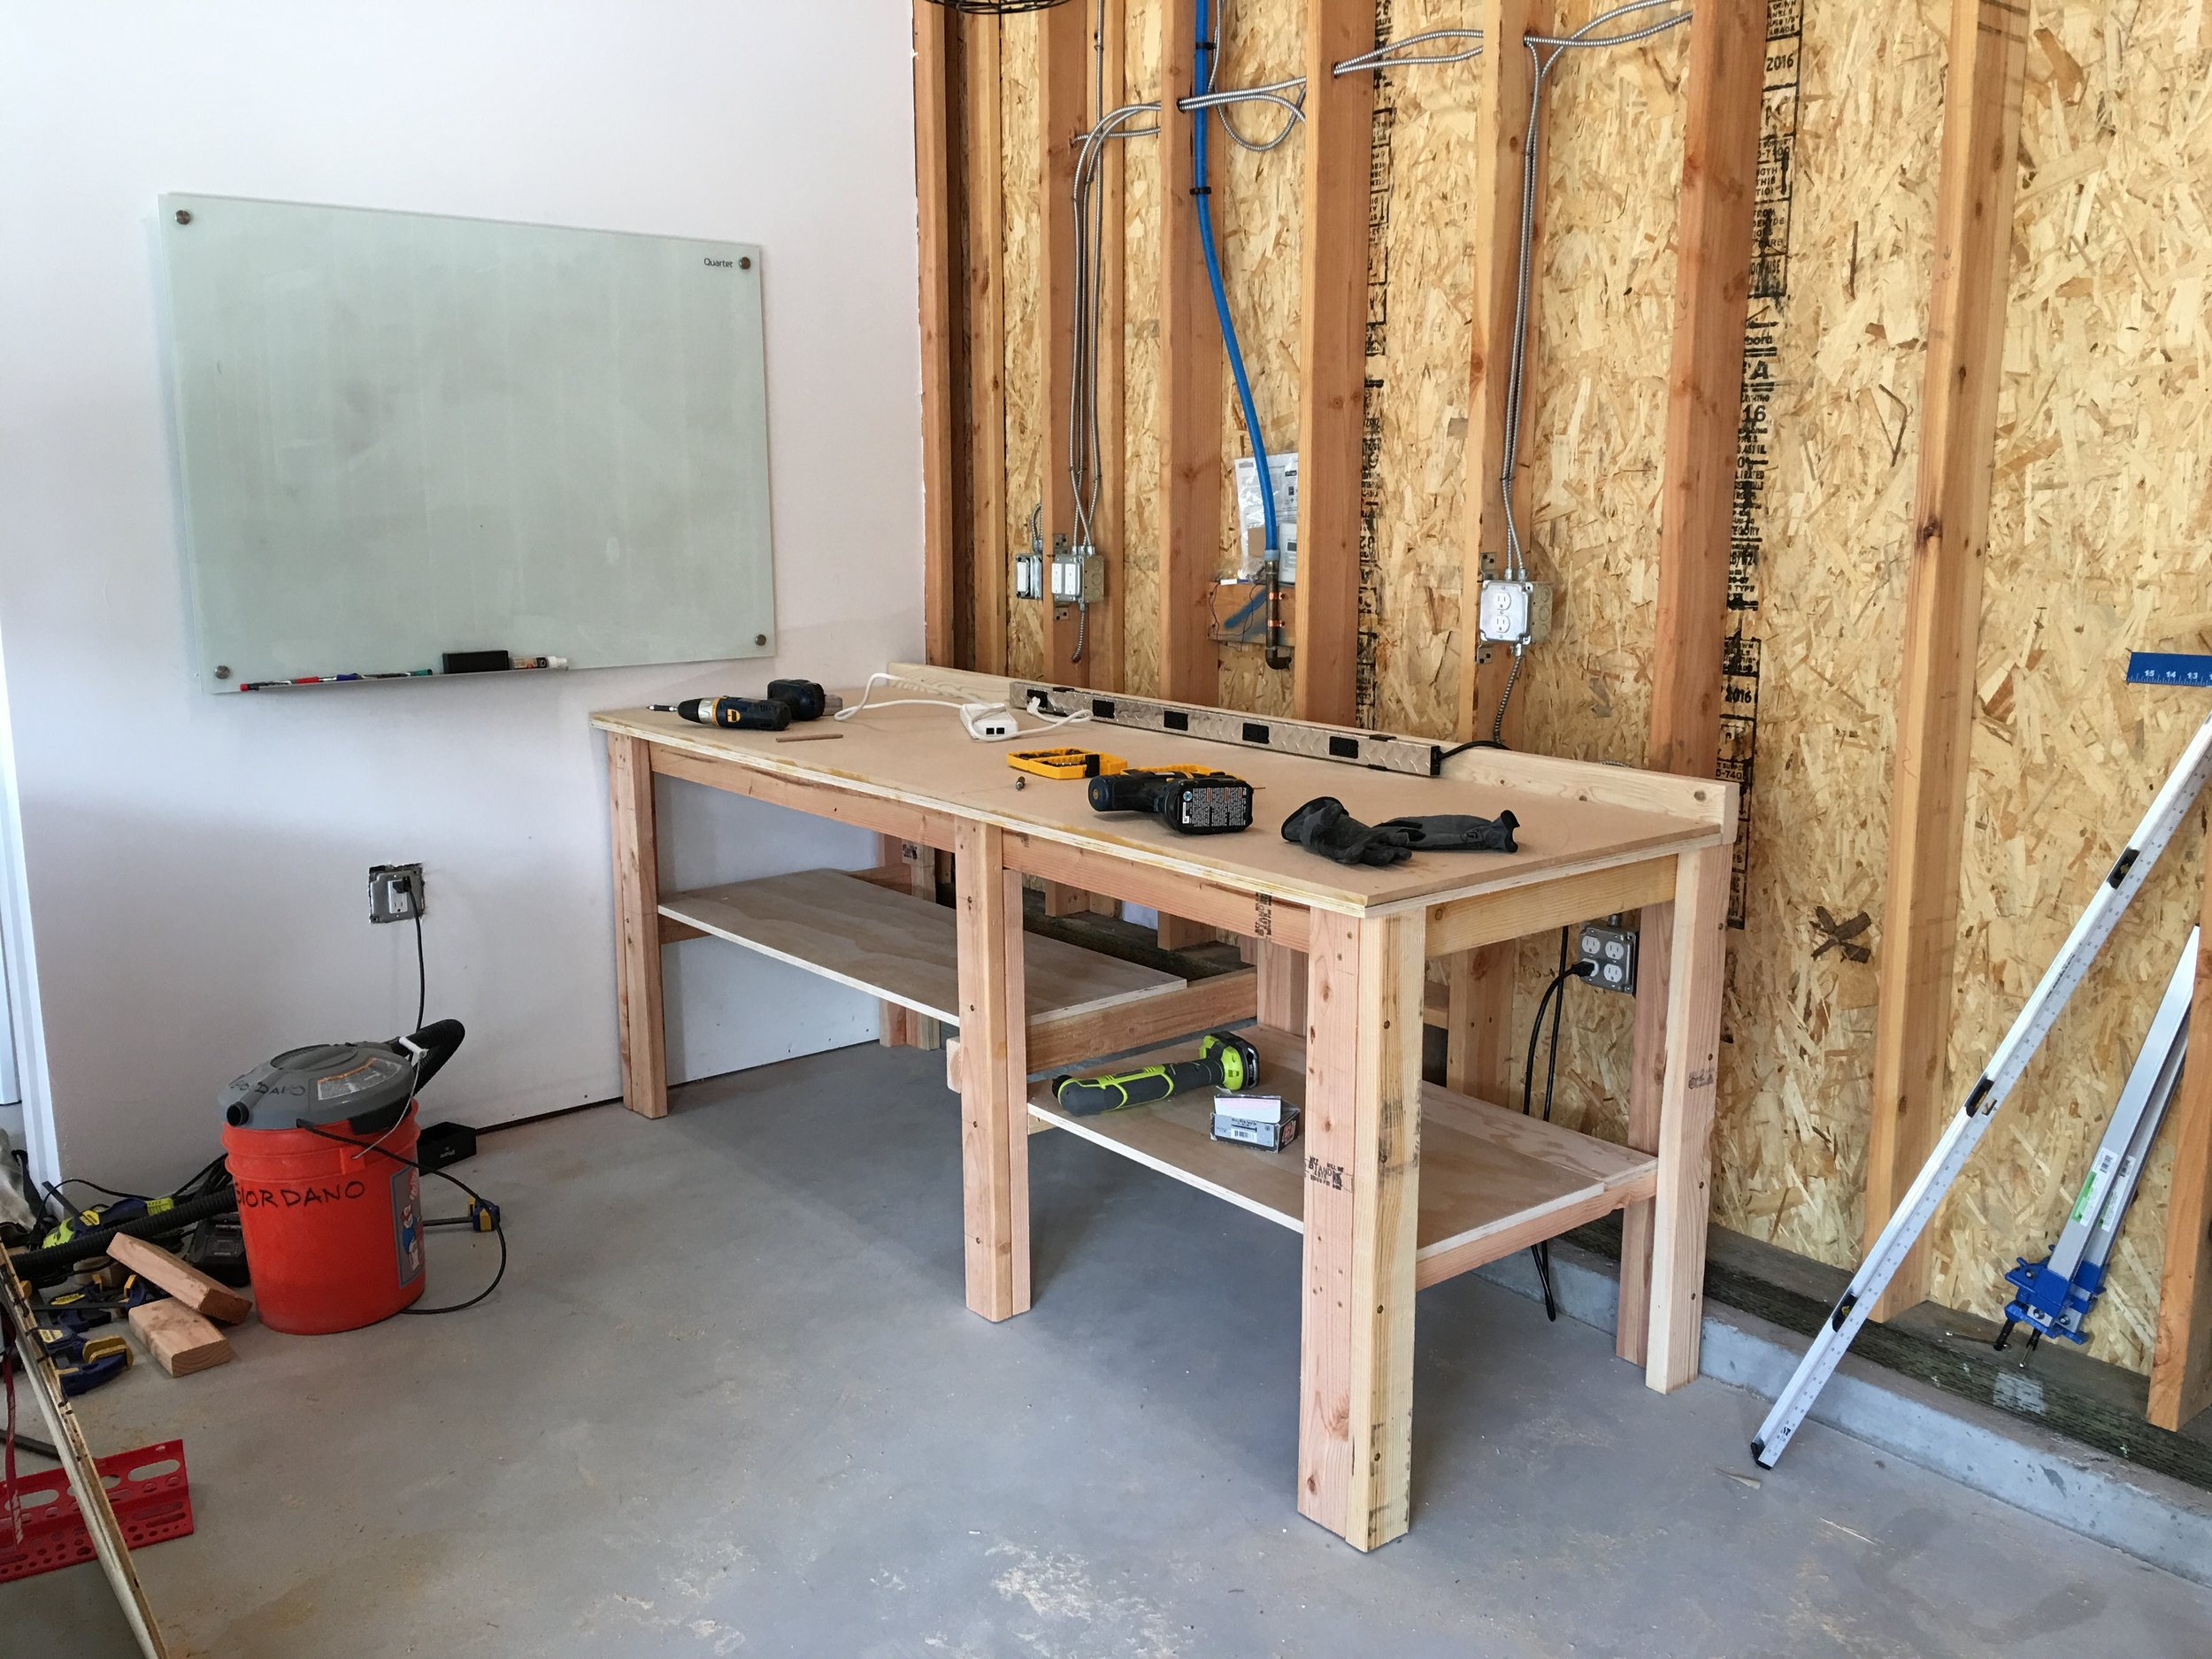 """Then added a 1/2"""" sheet of MDF. MDF is super smooth and the extra layer adds structure and density to the workbench.  Also added shelves underneath - plenty of room for the big Rubbermaid plastic bins.  Includes a backstop made from a 2x4. Used this to screw down a long power strip."""